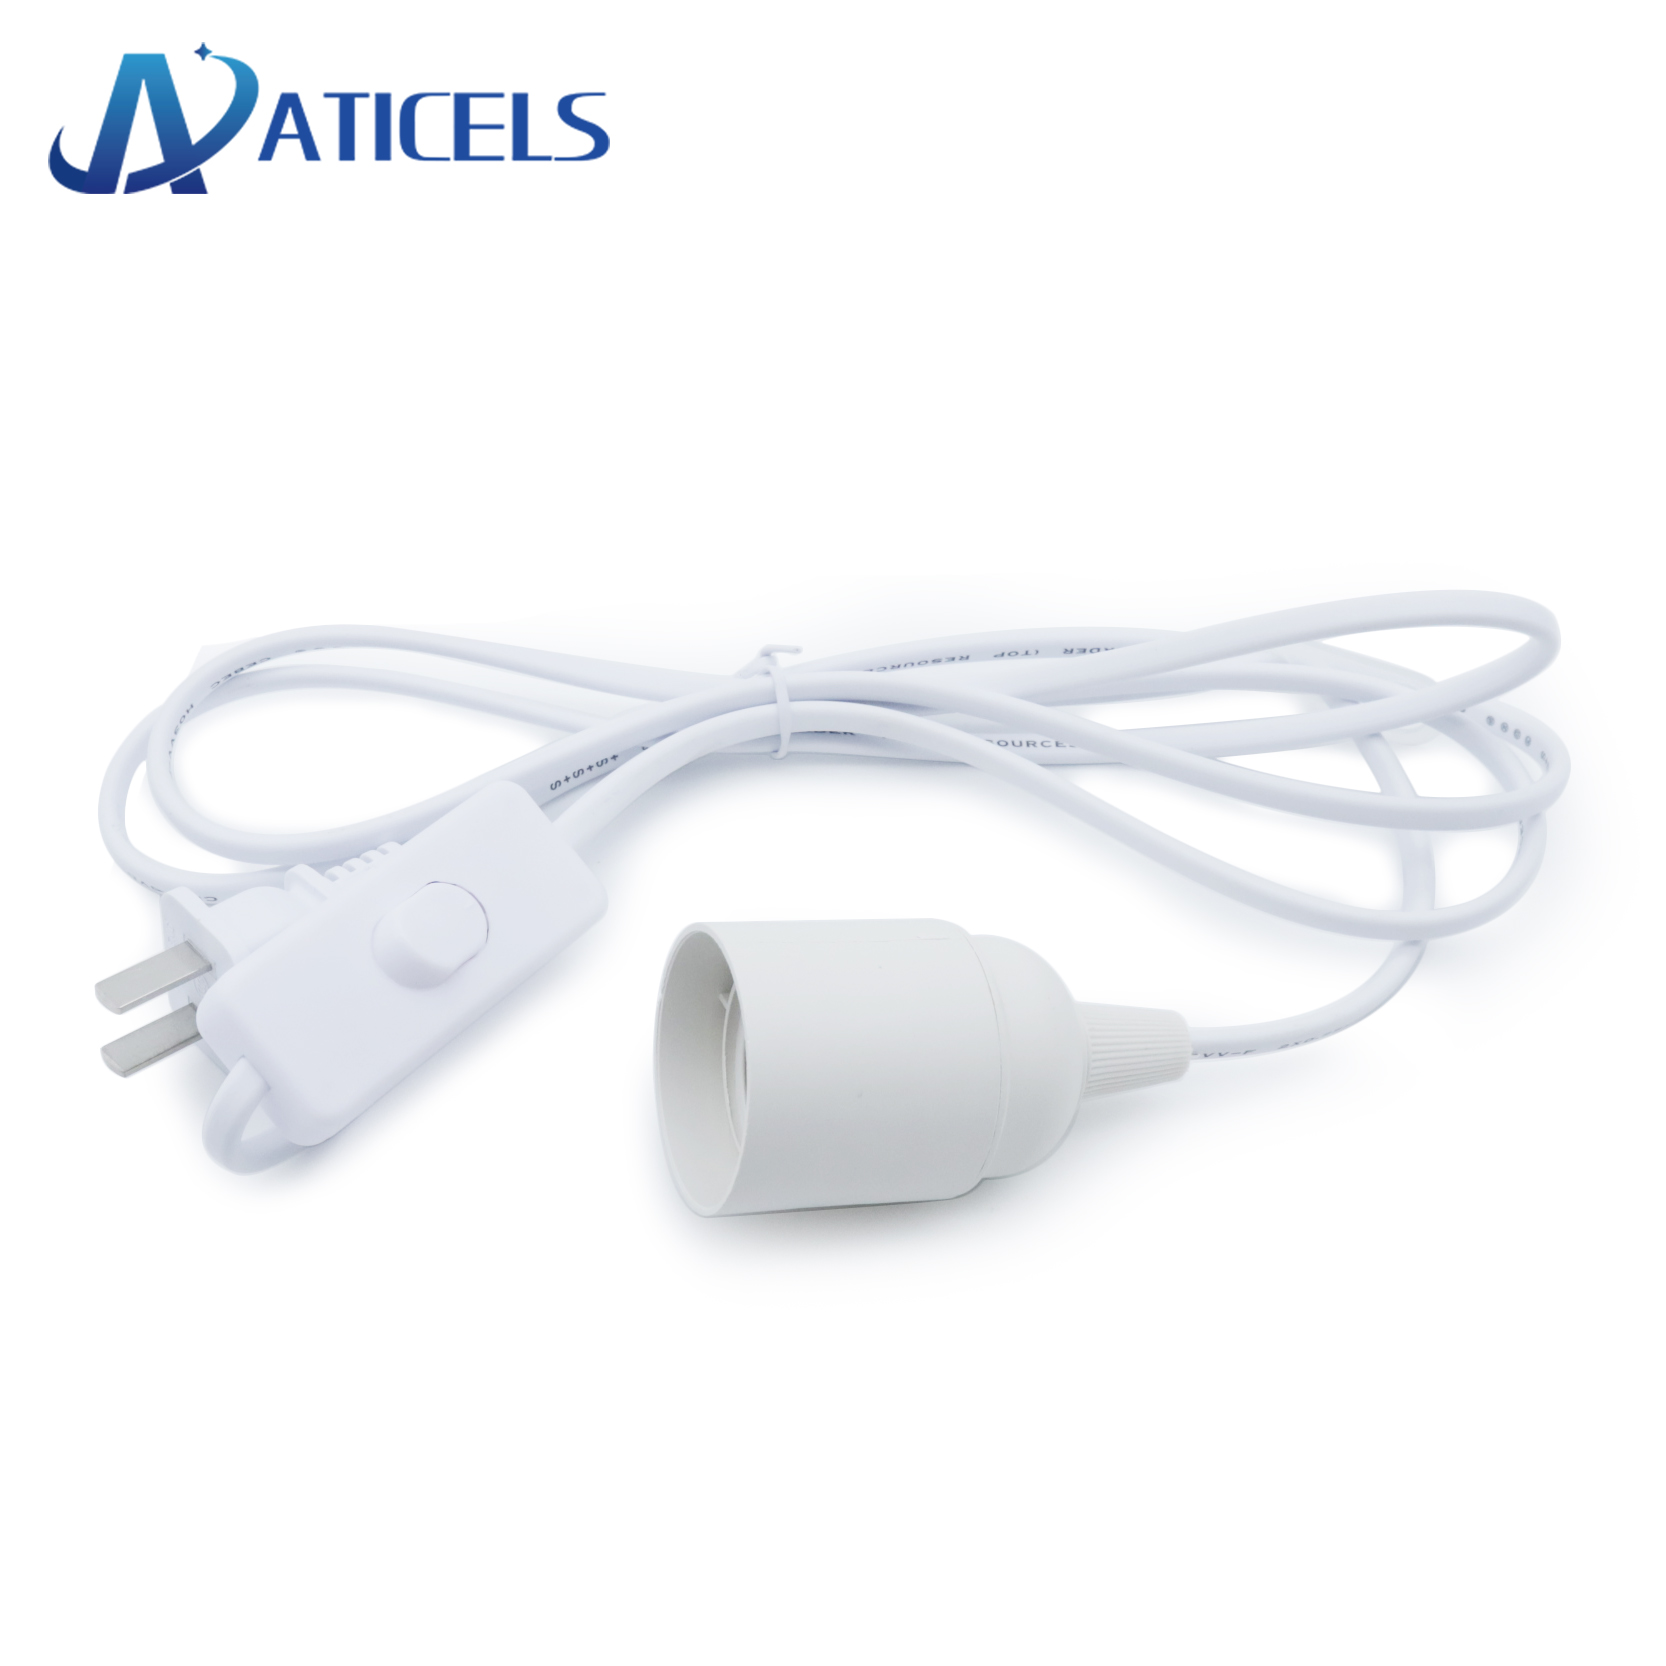 1.8m Power Cord Cable E27 Lamp Base EU Plug With ON/OFF Switch For Pendant LED Bulb E27 Socket Lamp Holder